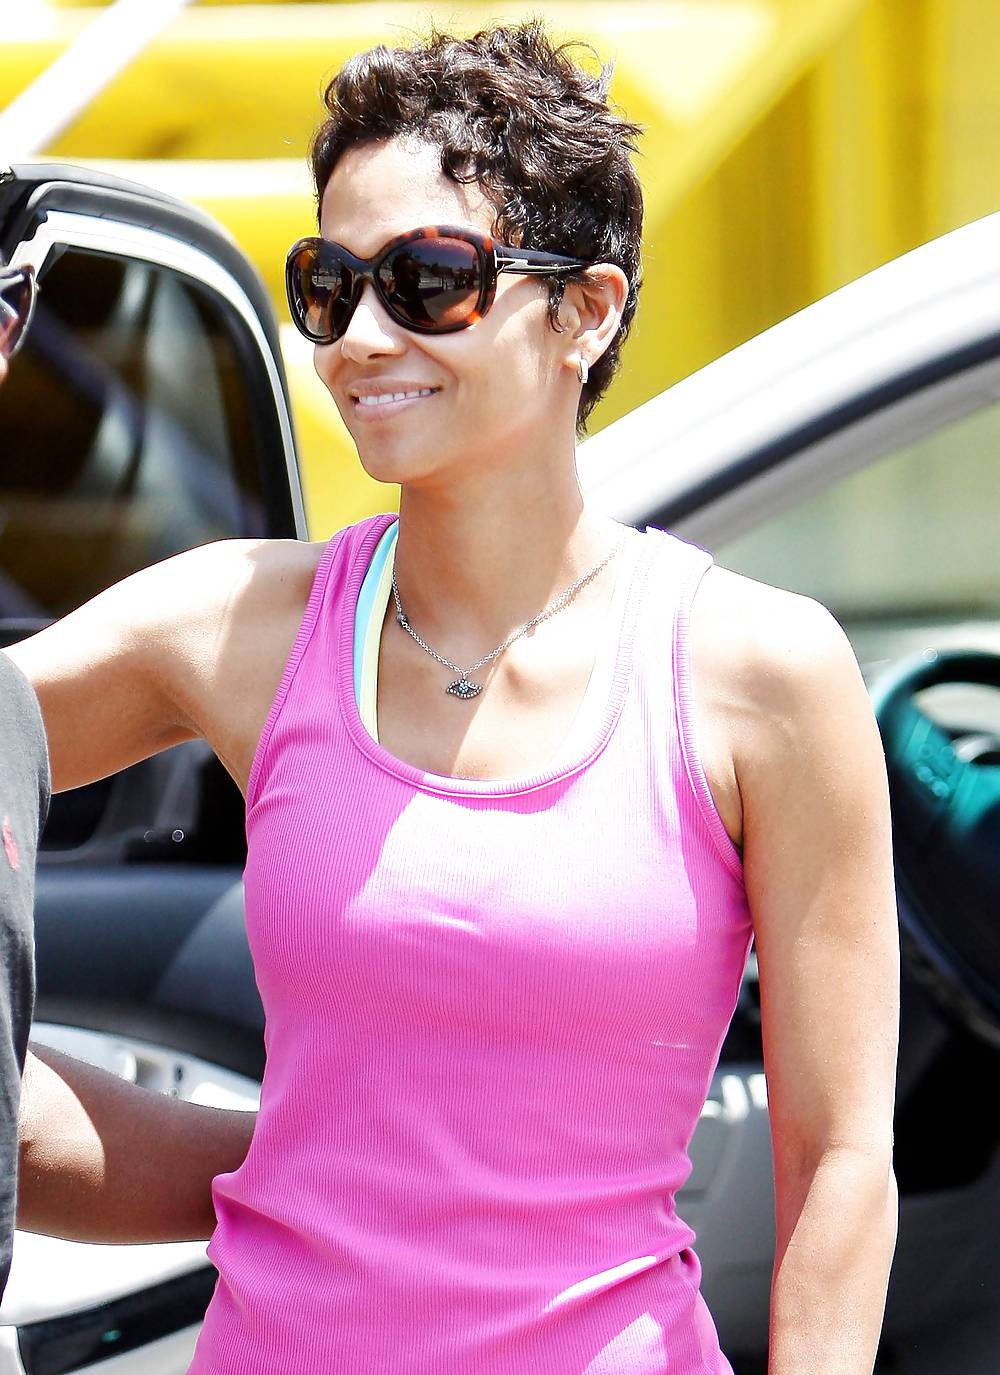 Halle Berry Nice Ass In Tight Youga Pants - 7 Pics -3116